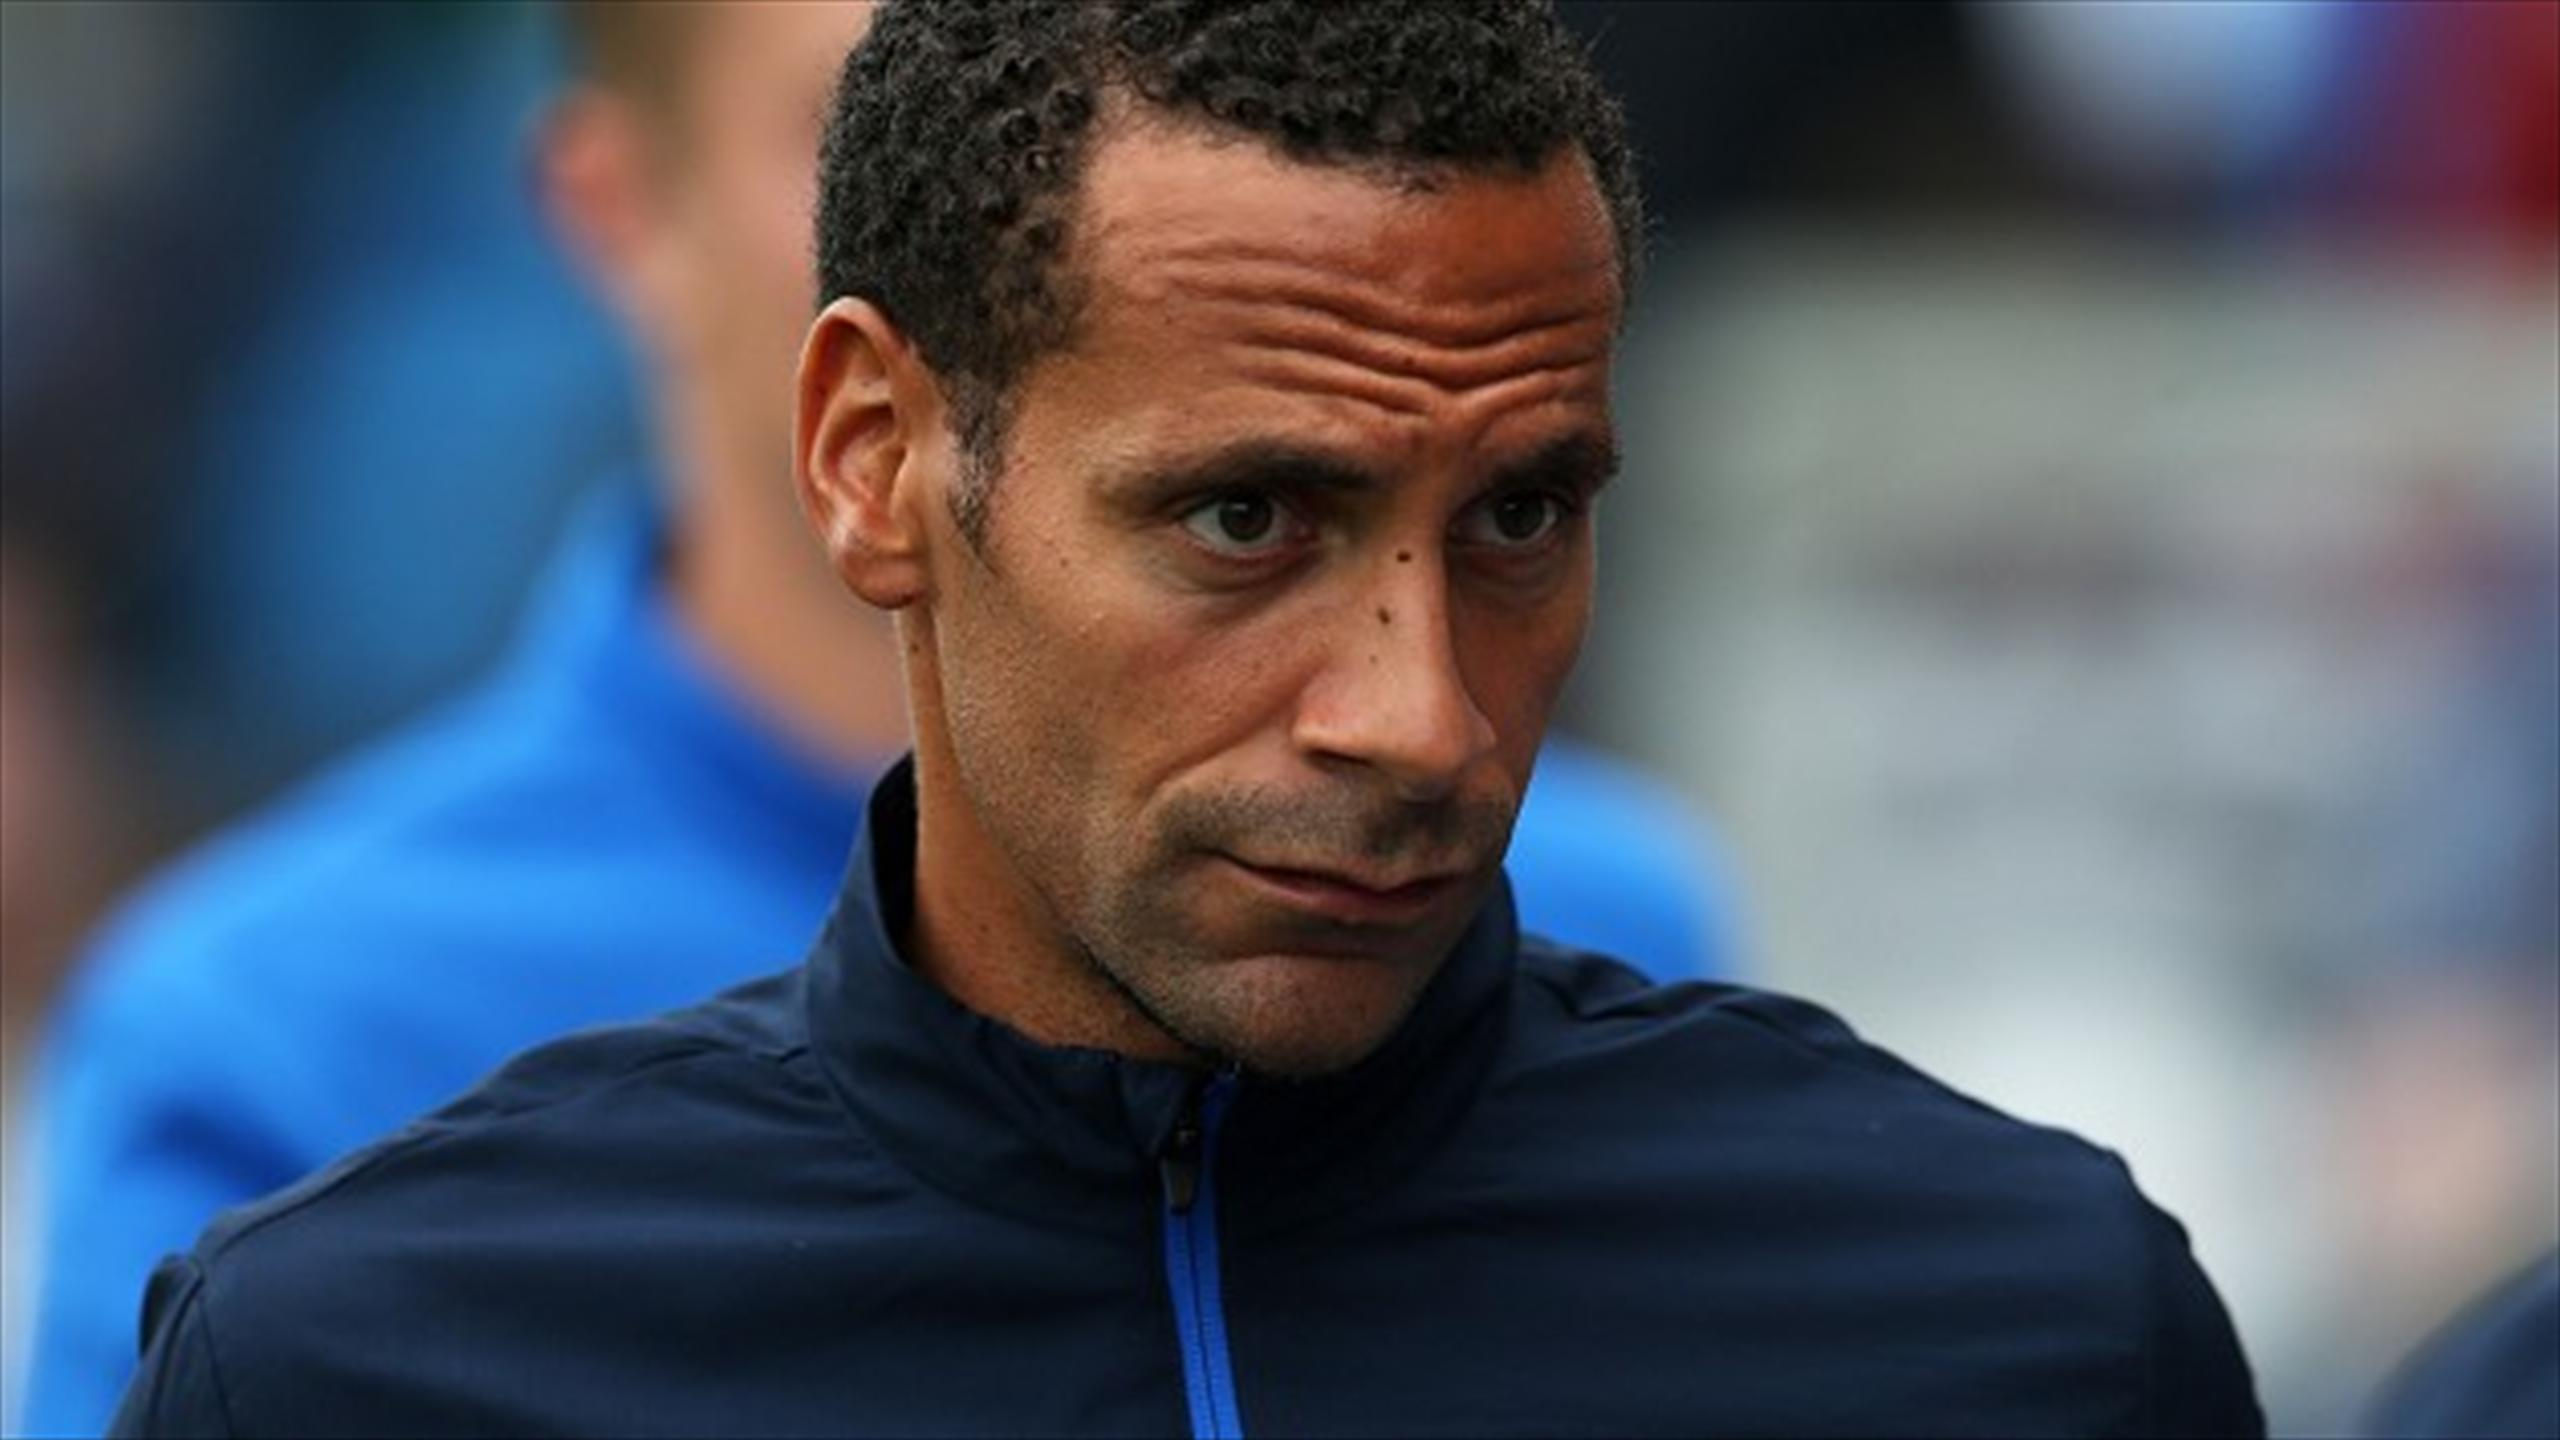 Rio Ferdinand has no personal feud with Kick it Out